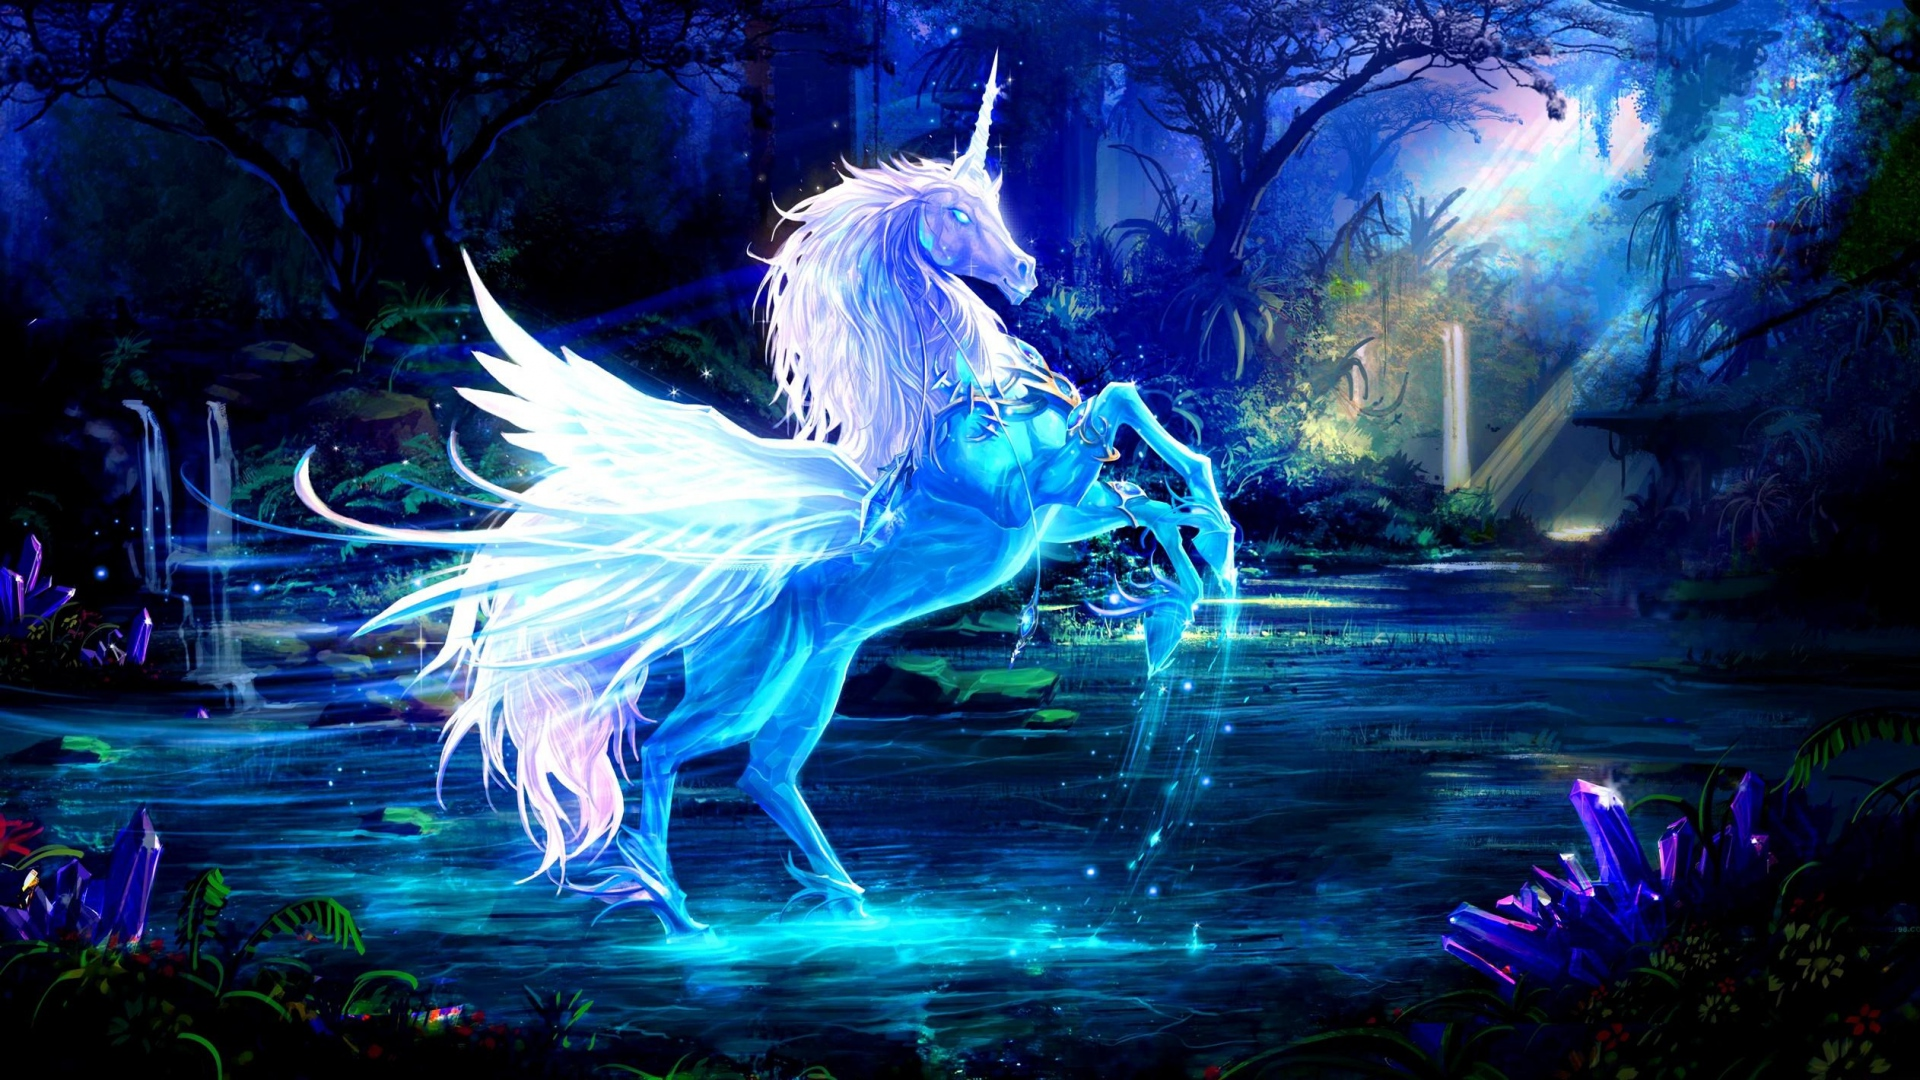 1920x1080-unicorn-water-forest-night-magic-wallpaper-wpc9001055